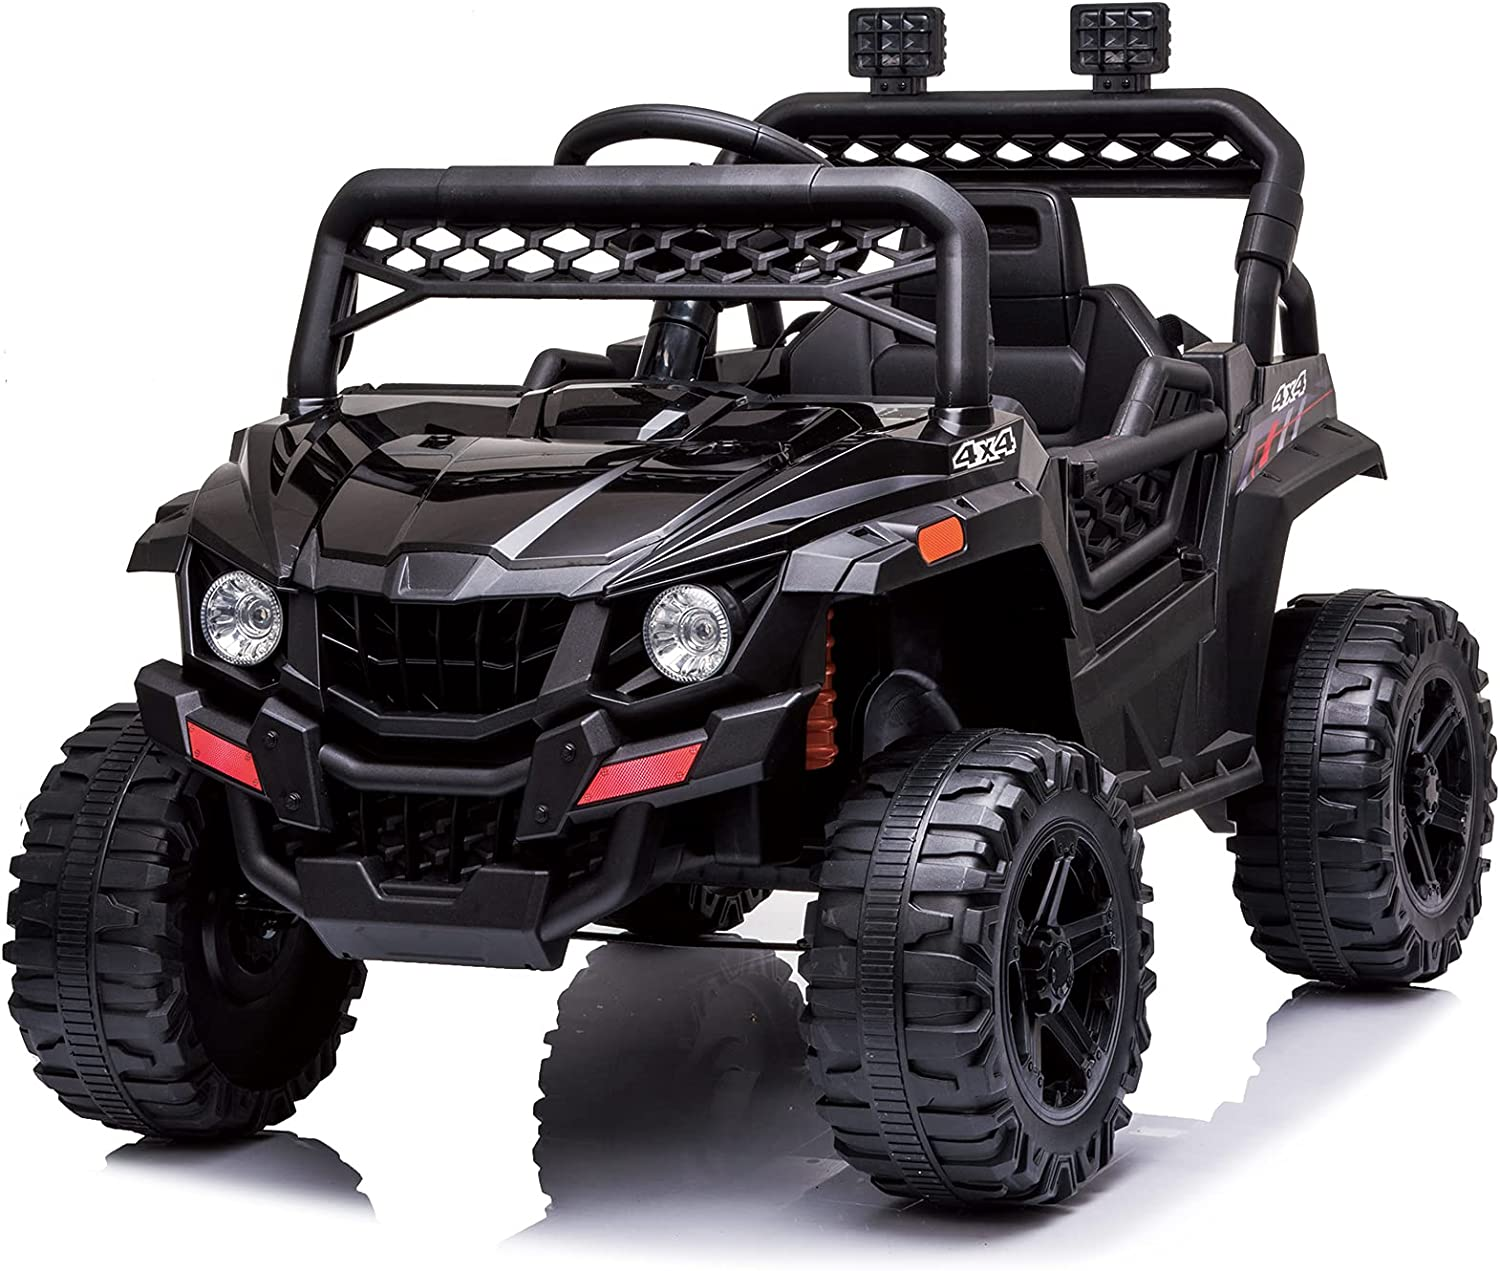 Track Seven Powered Ride-On UTV Battery On Ride 12V Max 66% OFF Truc Dealing full price reduction